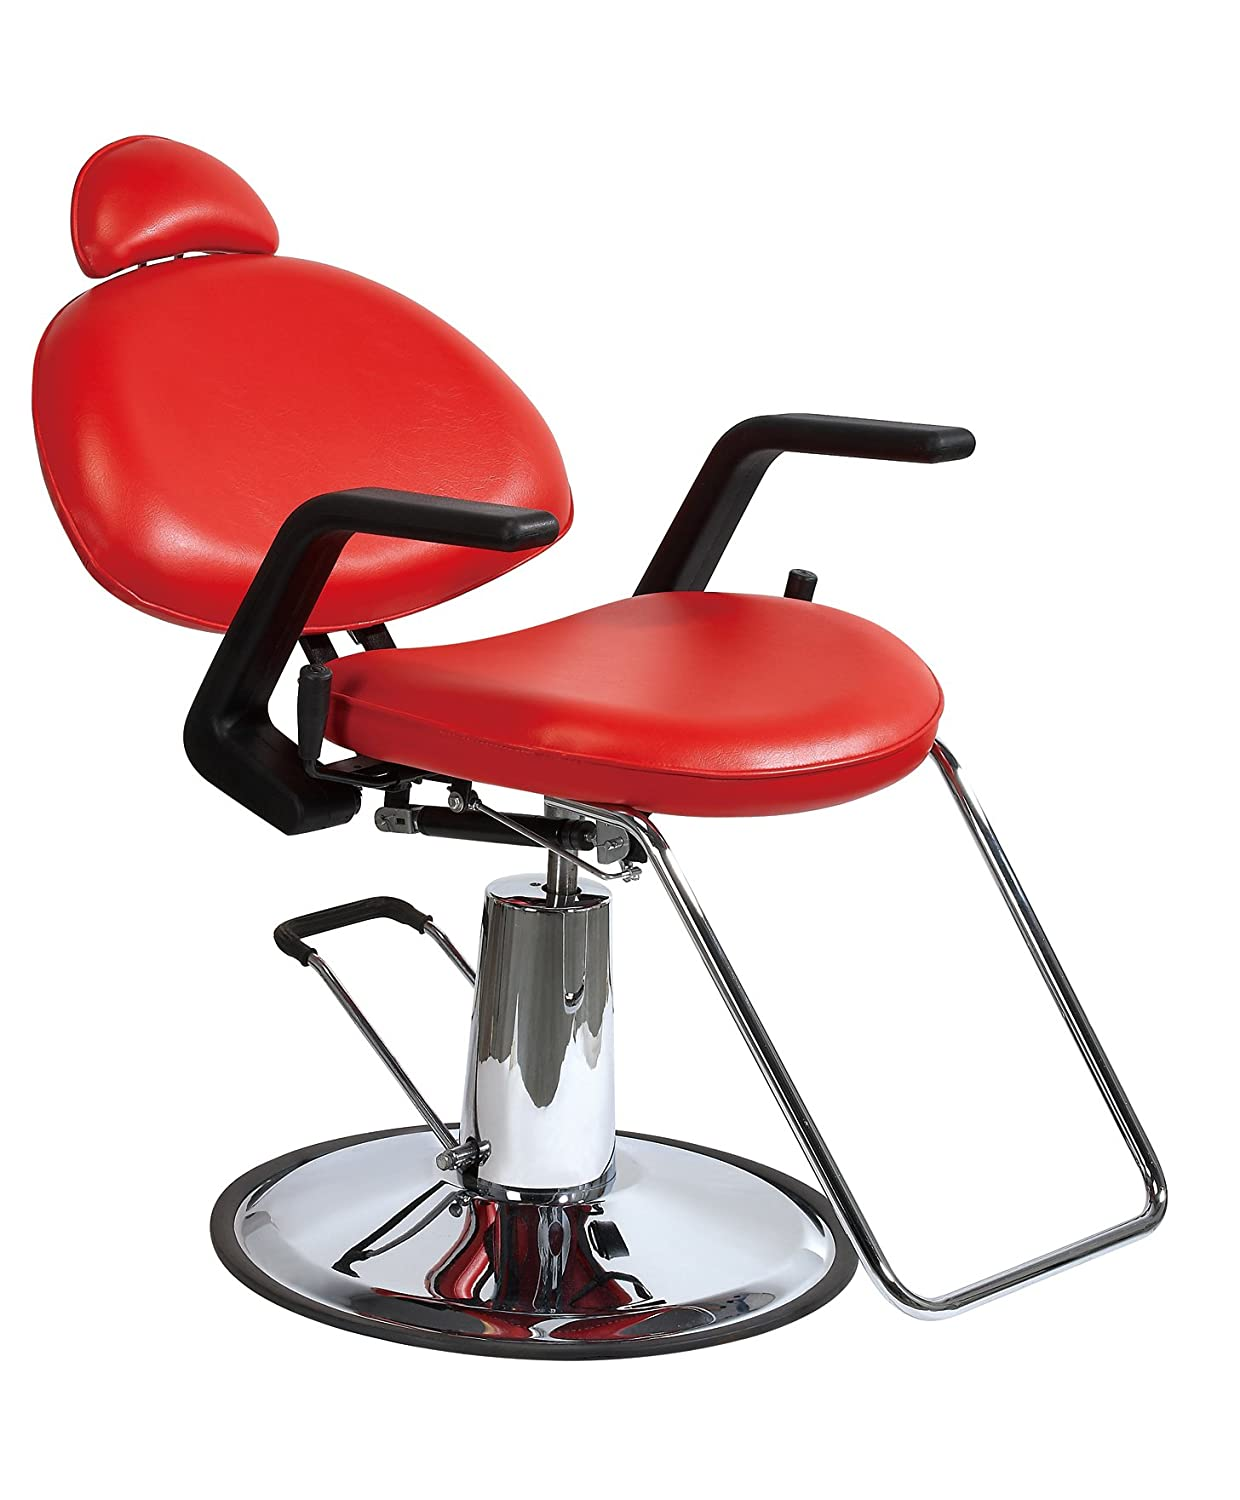 Amazon.com  All Purpose Hydraulic Recline Barber Chair Sh&oo  Hair Styling Accessories  Beauty  sc 1 st  Amazon.com & Amazon.com : All Purpose Hydraulic Recline Barber Chair Shampoo ... islam-shia.org